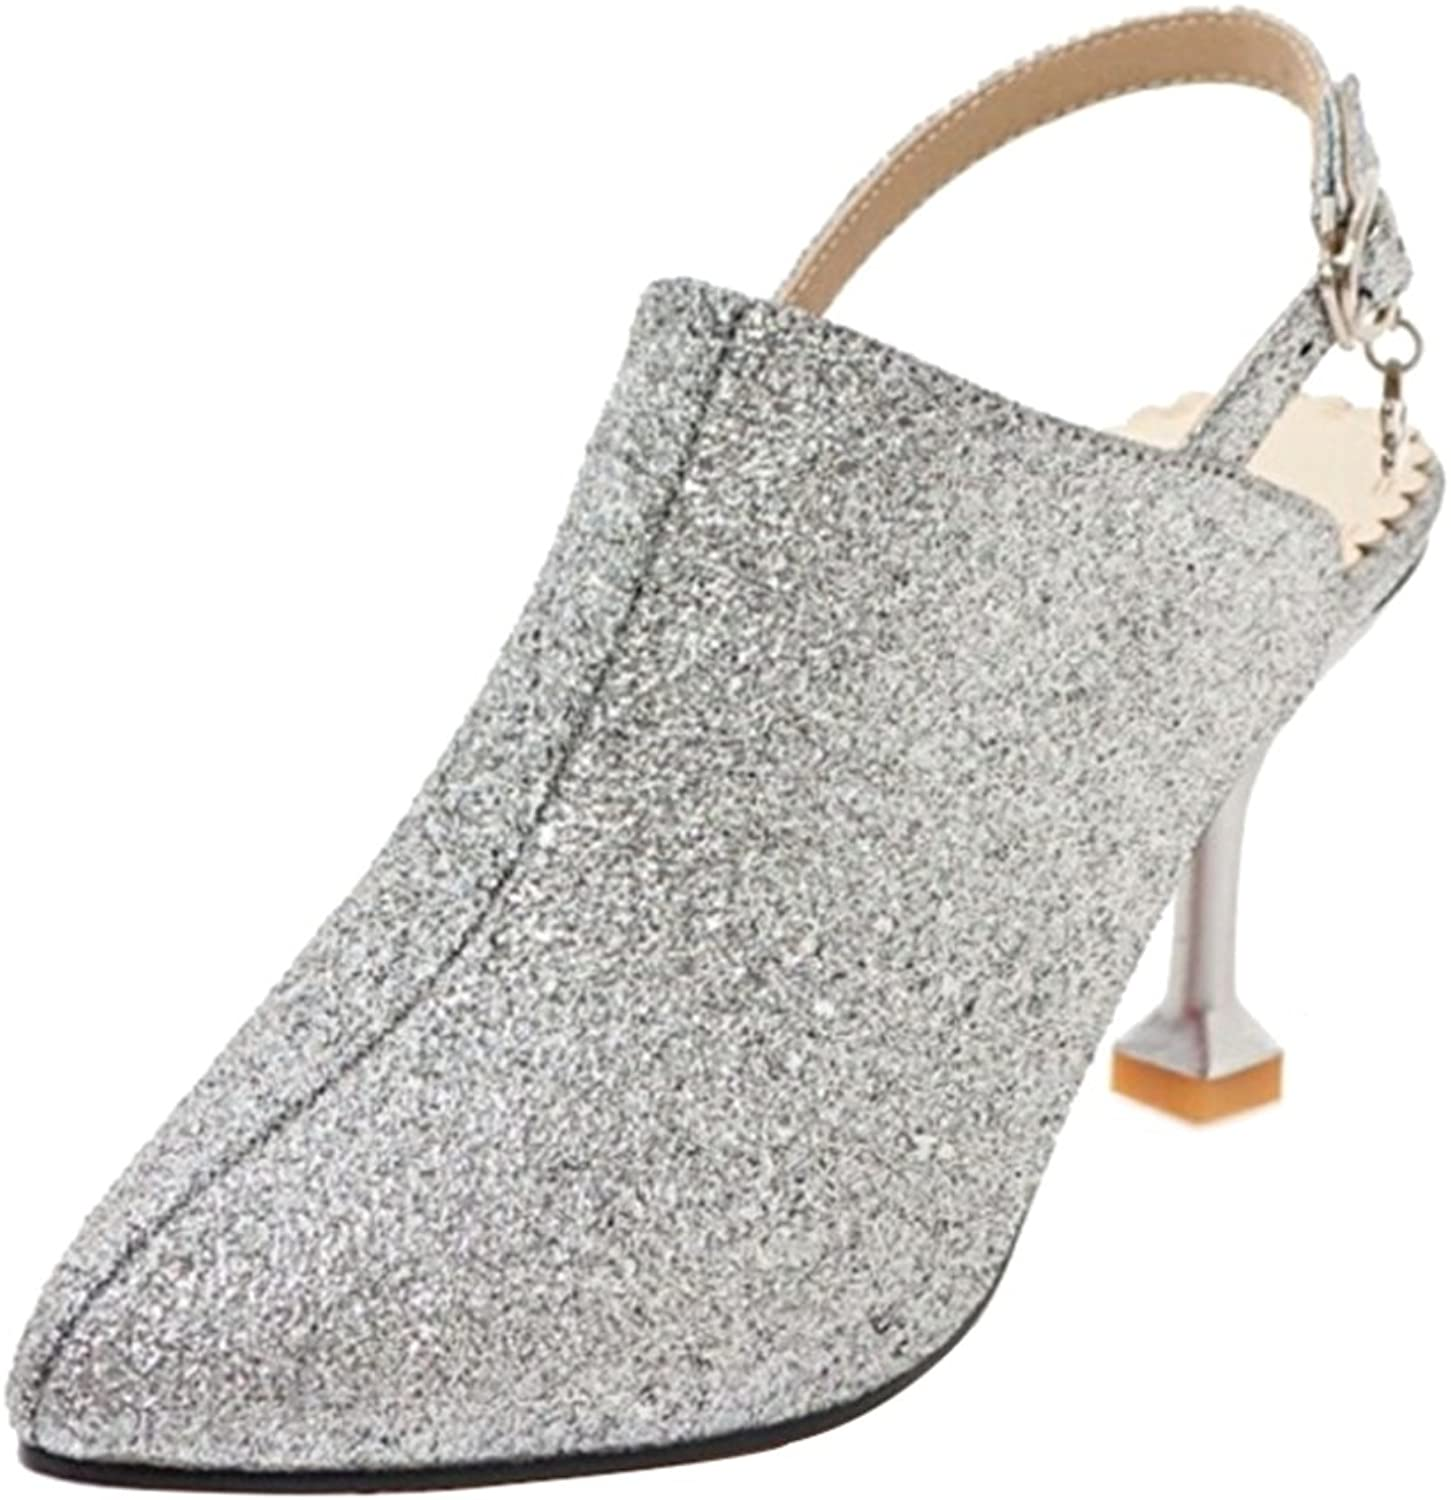 CuteFlats Women Bling Sandals with Pointed Toe and Cone Toe